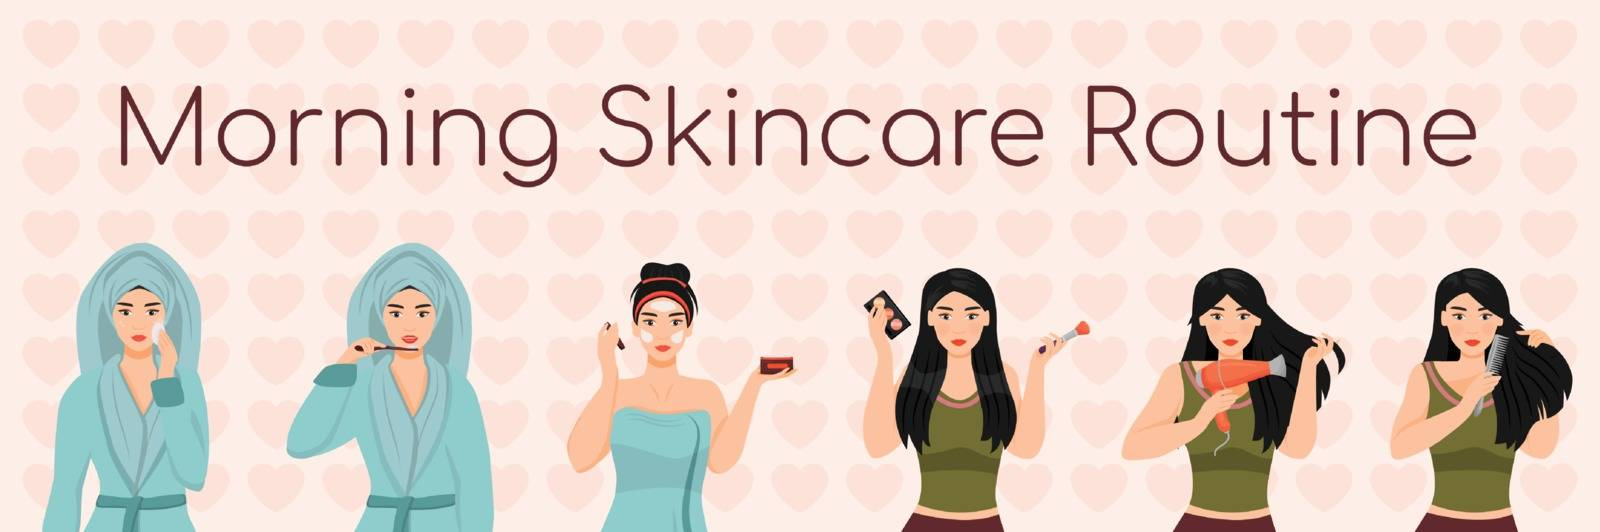 Woman morning skincare routine flat color vector characters set. Healthy skin and hair daily procedures isolated cartoon illustrations on white background. Girl brushing teeth, drying hair